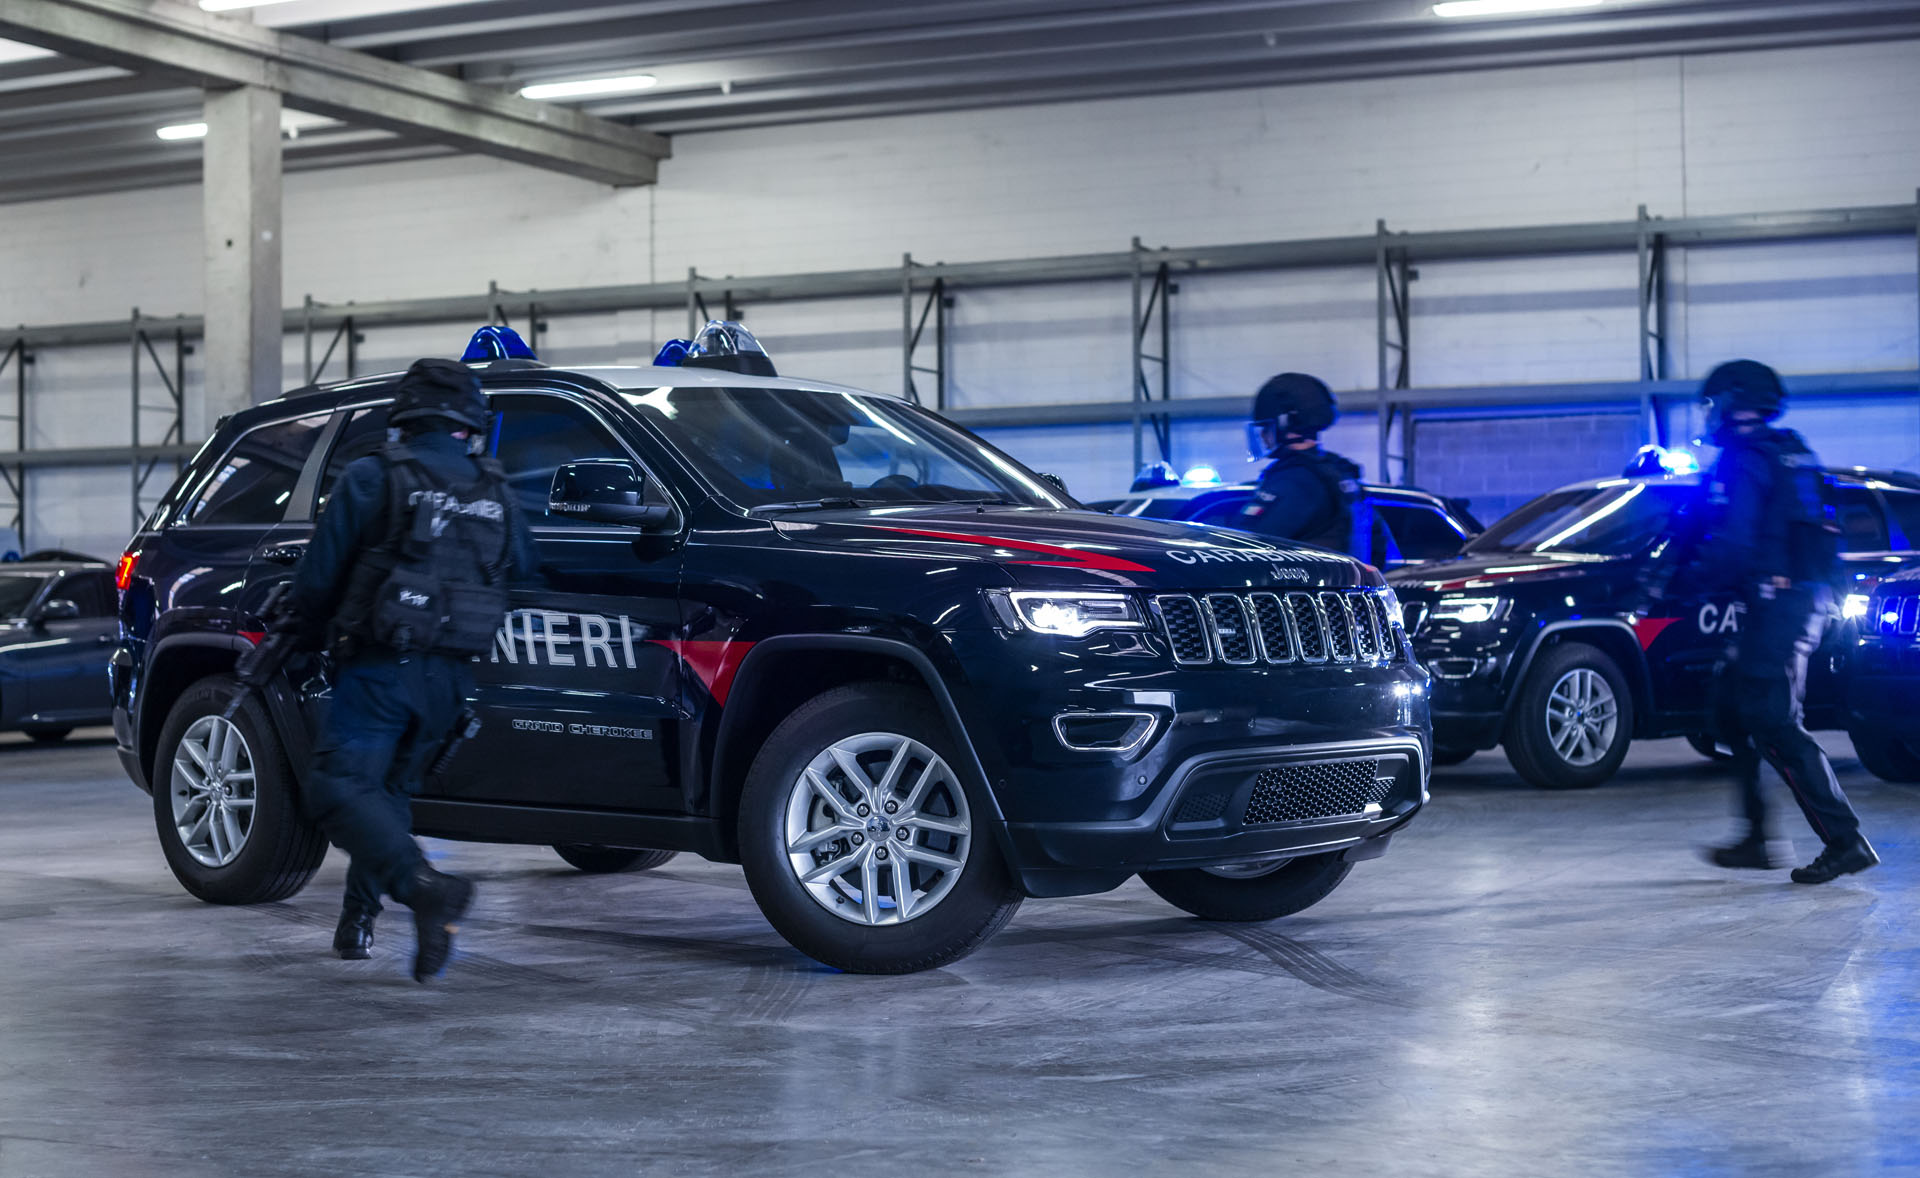 758b23ea-181031_jeep_grand_cherokee_carabinieri_01-copy